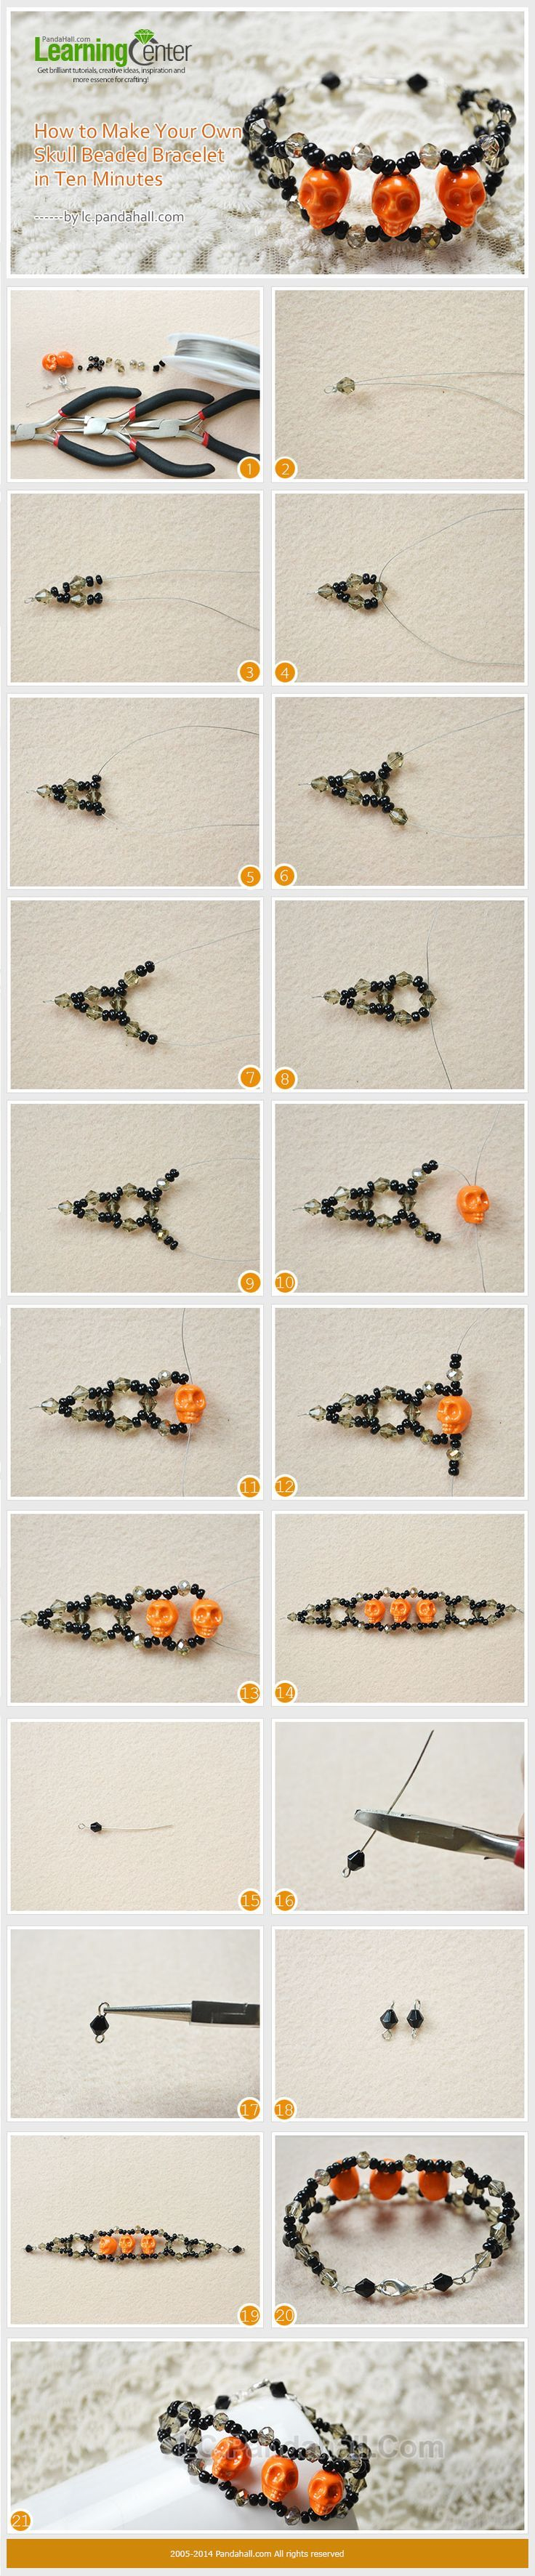 make halloween jewelry with skull beads | beads, bracelets and craft